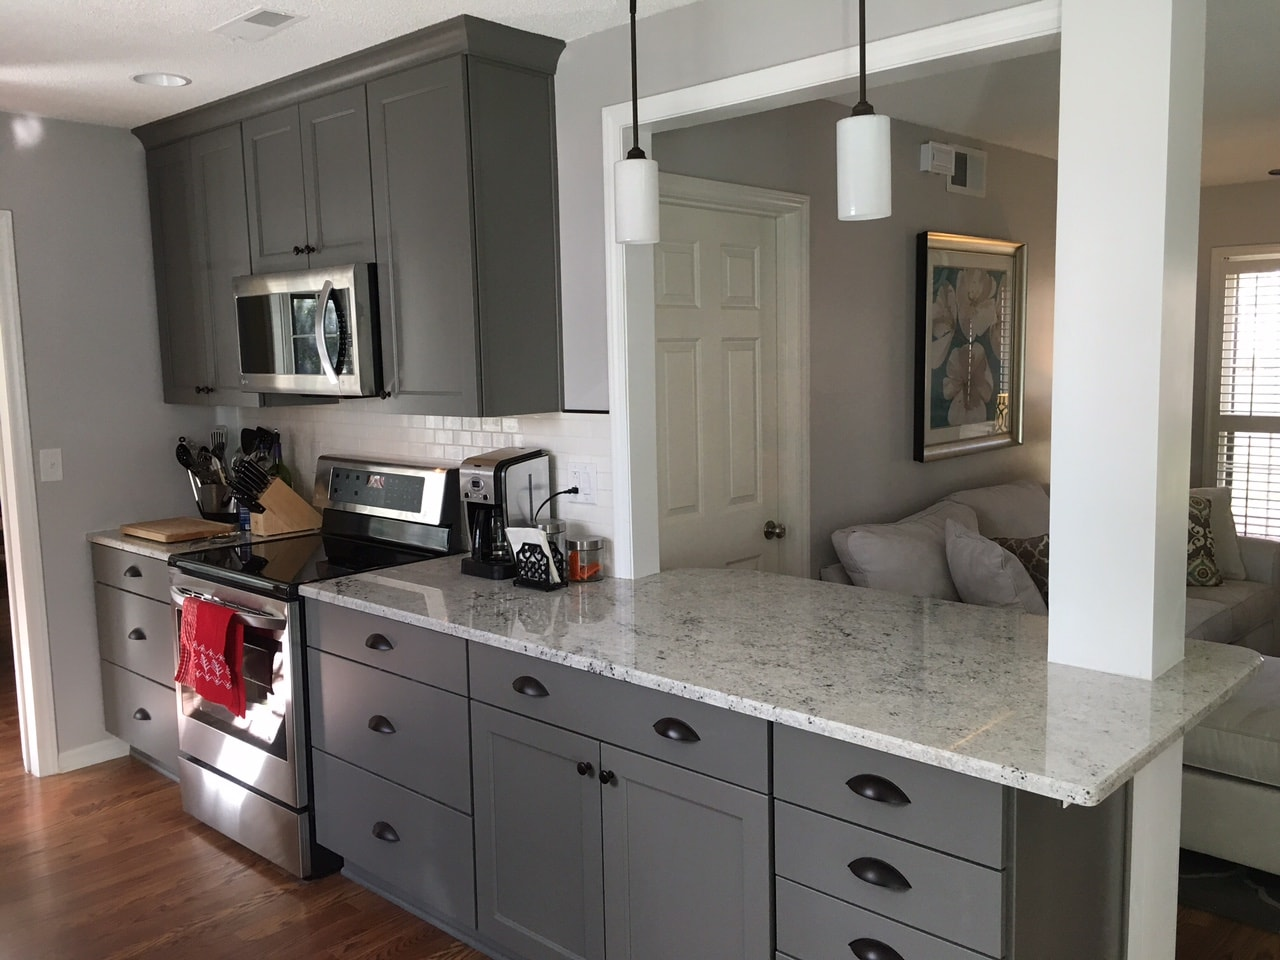 Salvaged kitchen cabinets charlotte nc - Welcome To Kitchen Masters Since 1992 We Have Been Charlotte S Premier Source For Fine Cabinetry For Your Home Or Business